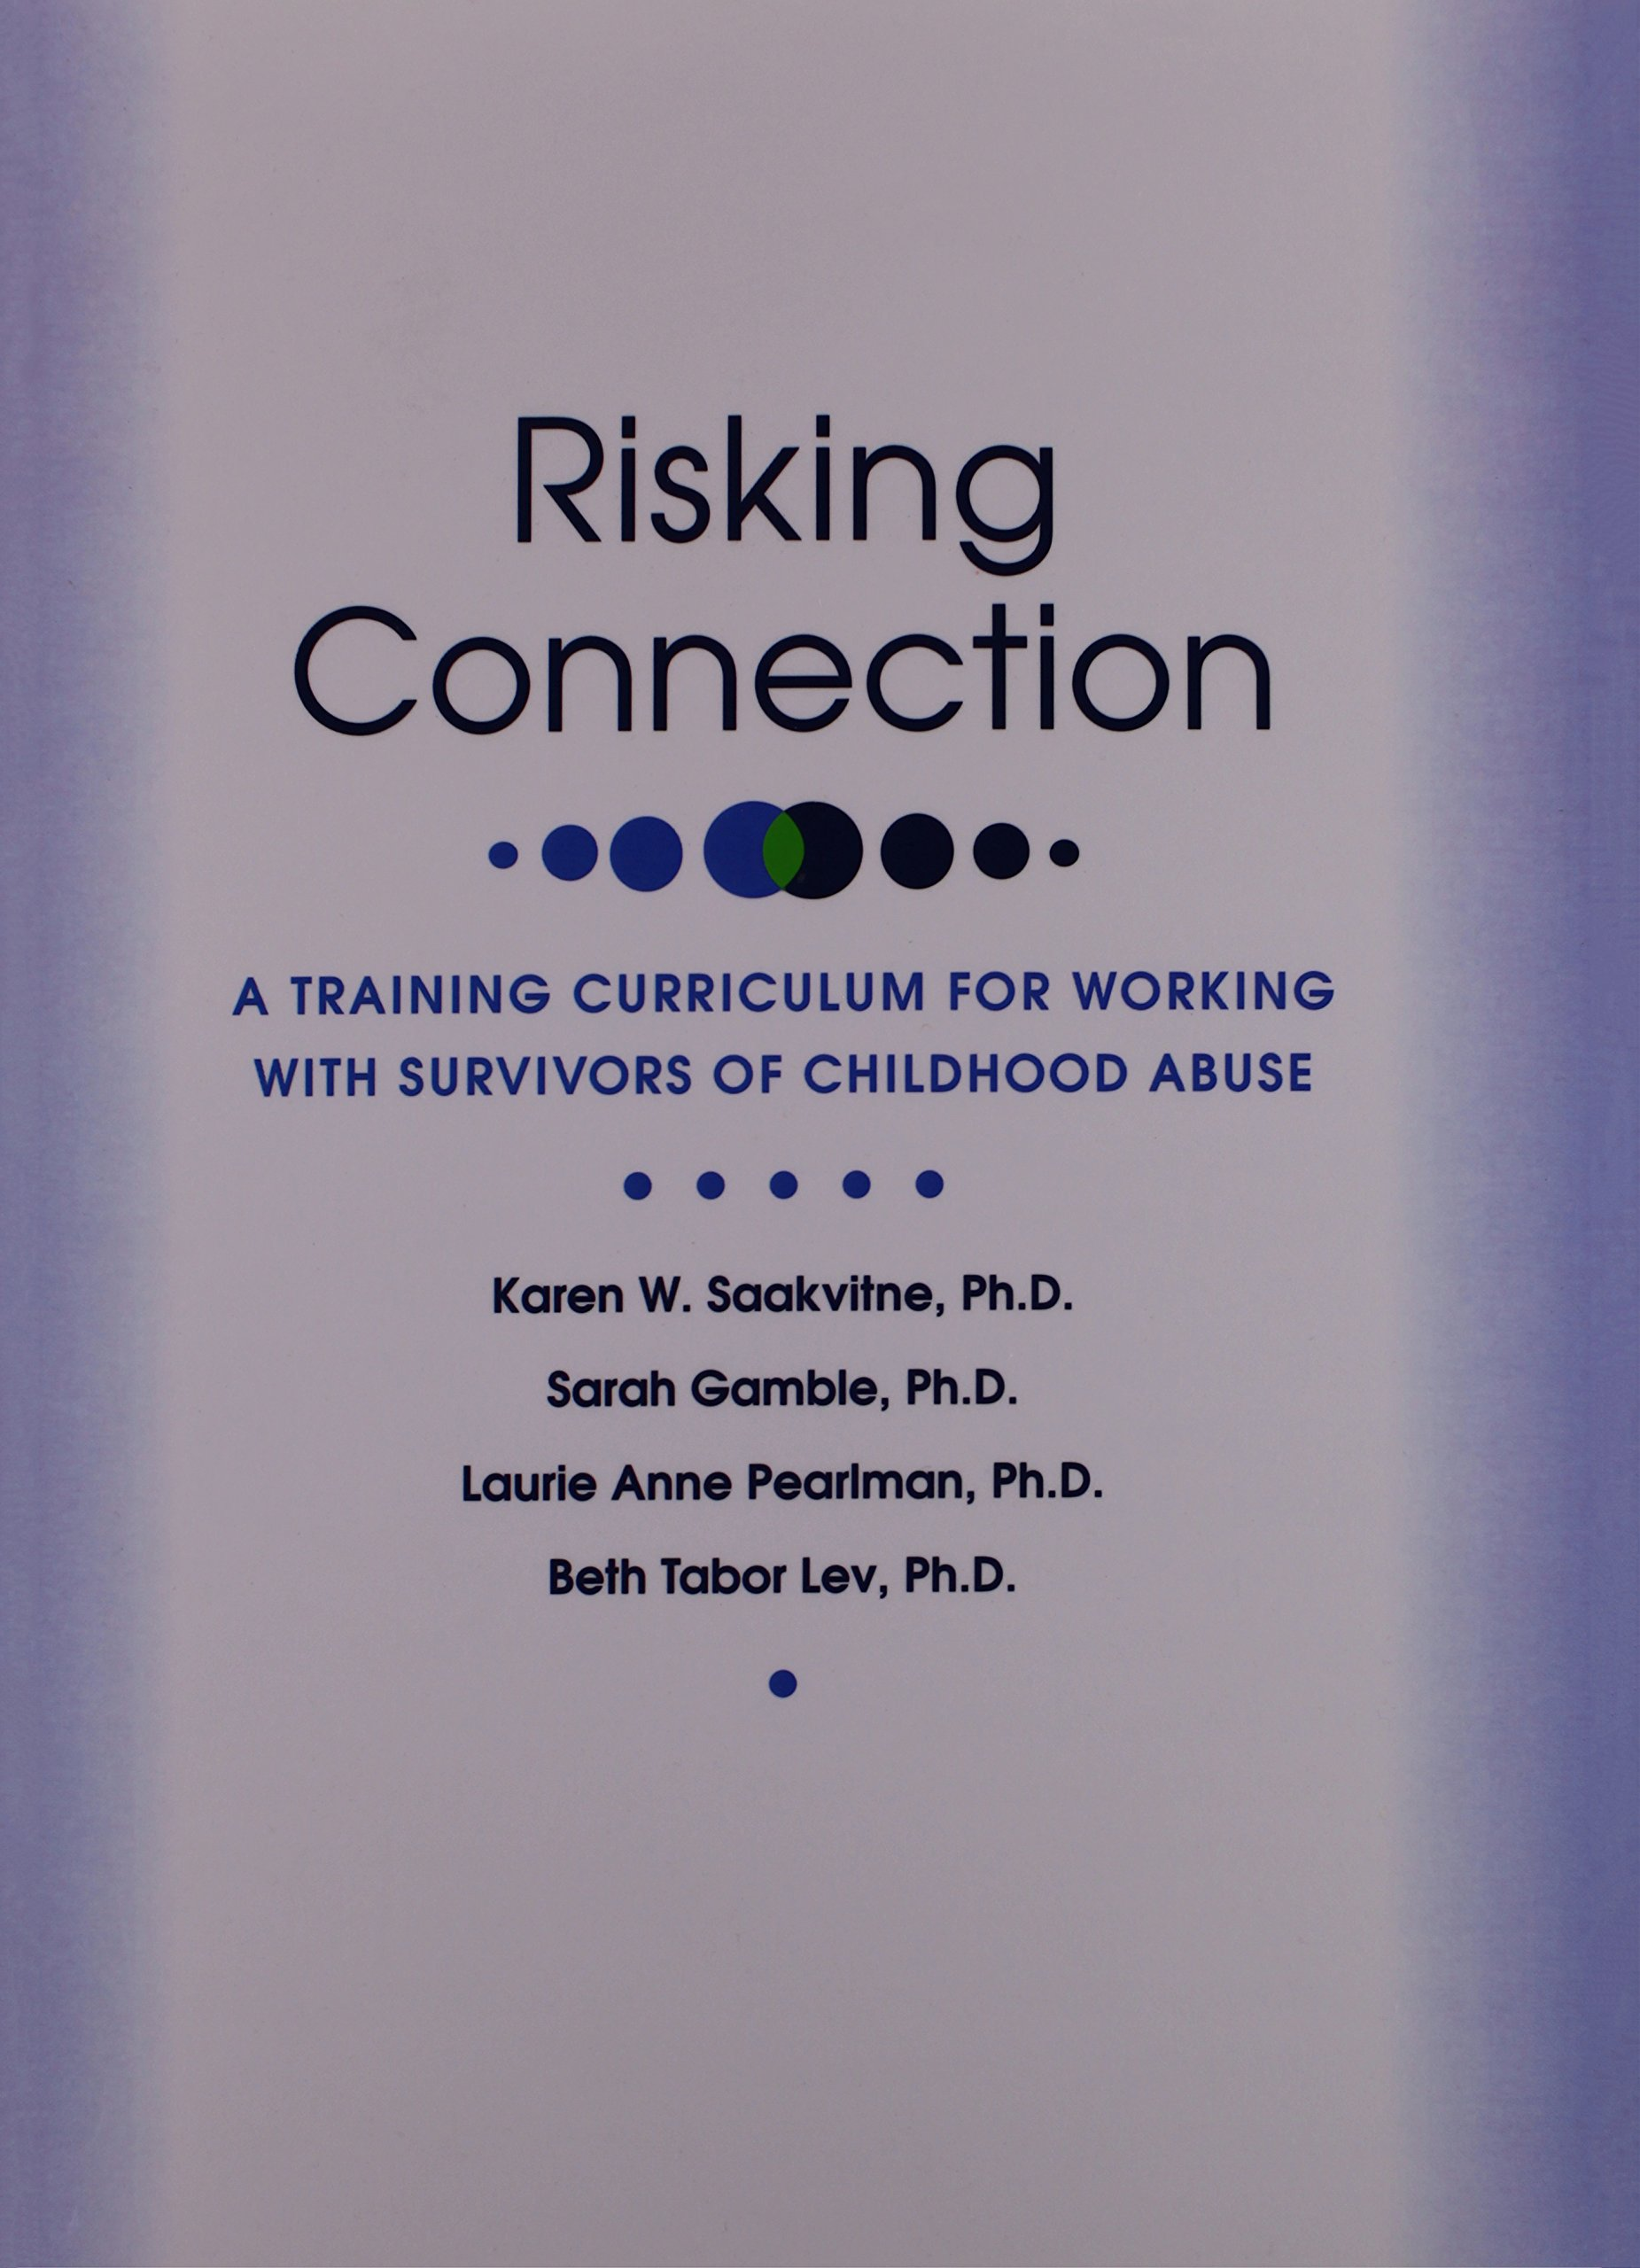 Risking Connection: A Training Curriculum for Working With Survivors of Childhood Abuse pdf